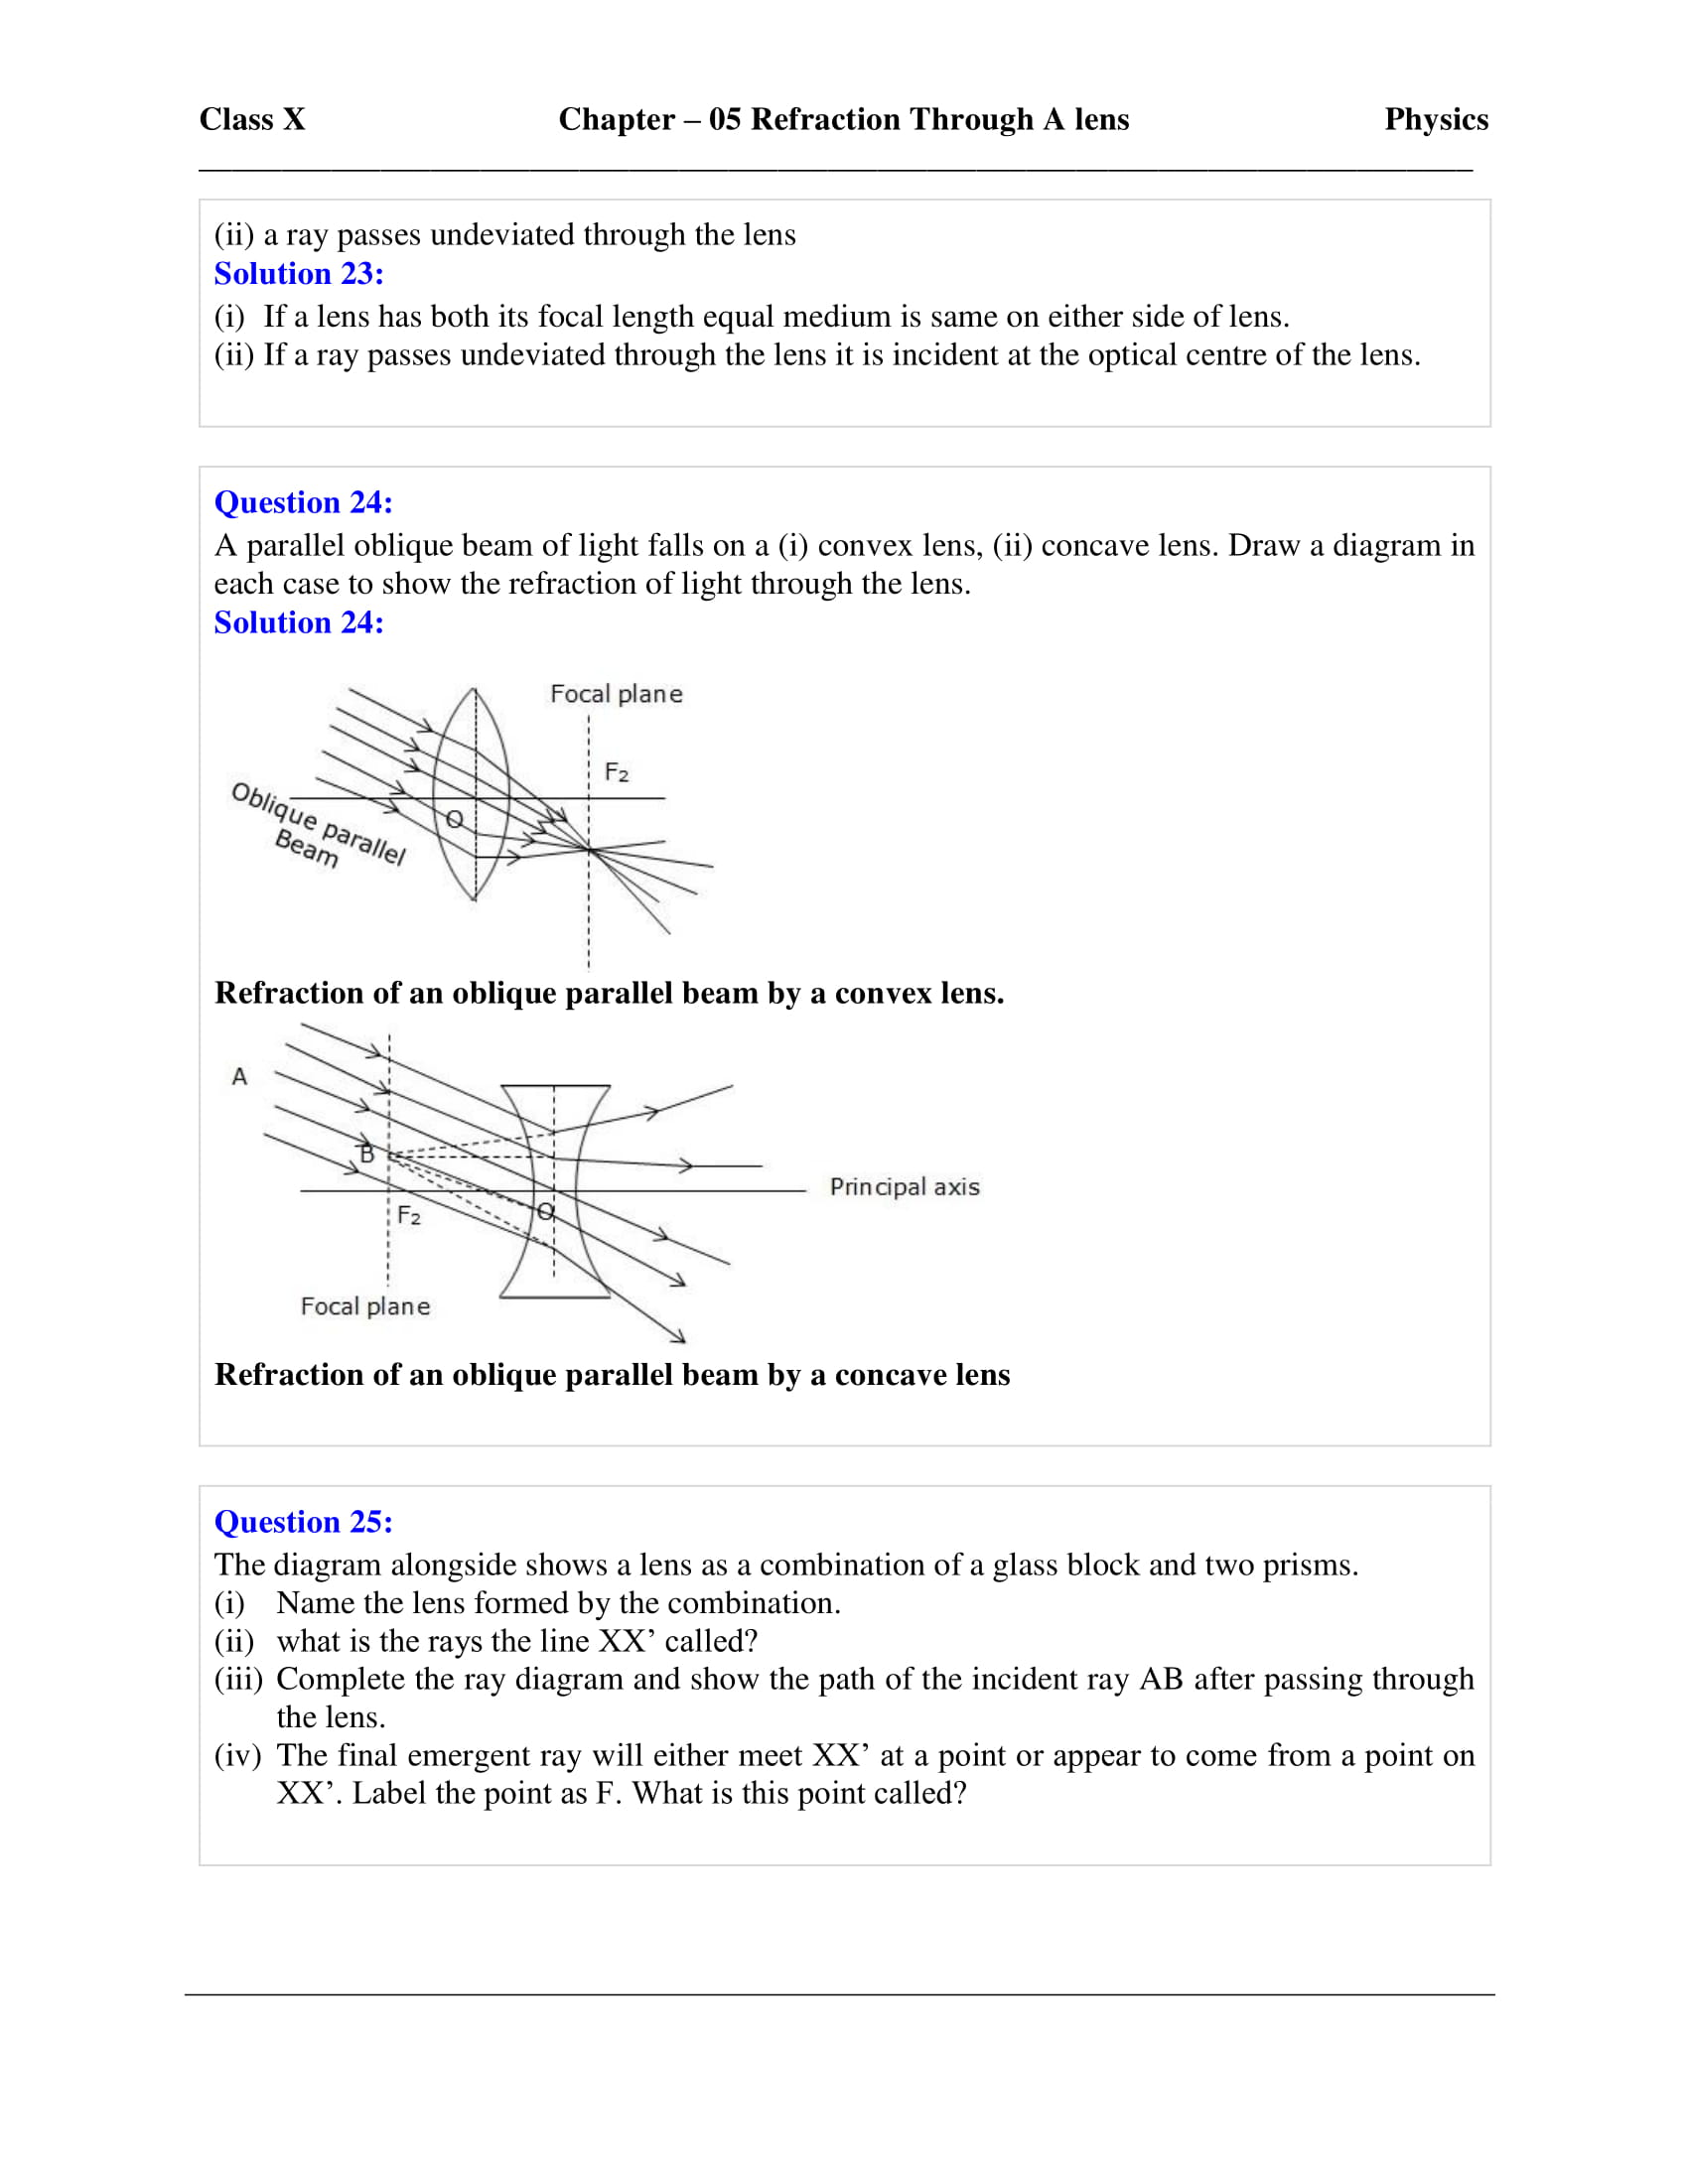 icse-selina-physics-solutions-class-10-chapter-5-refraction-through-a-lens-09